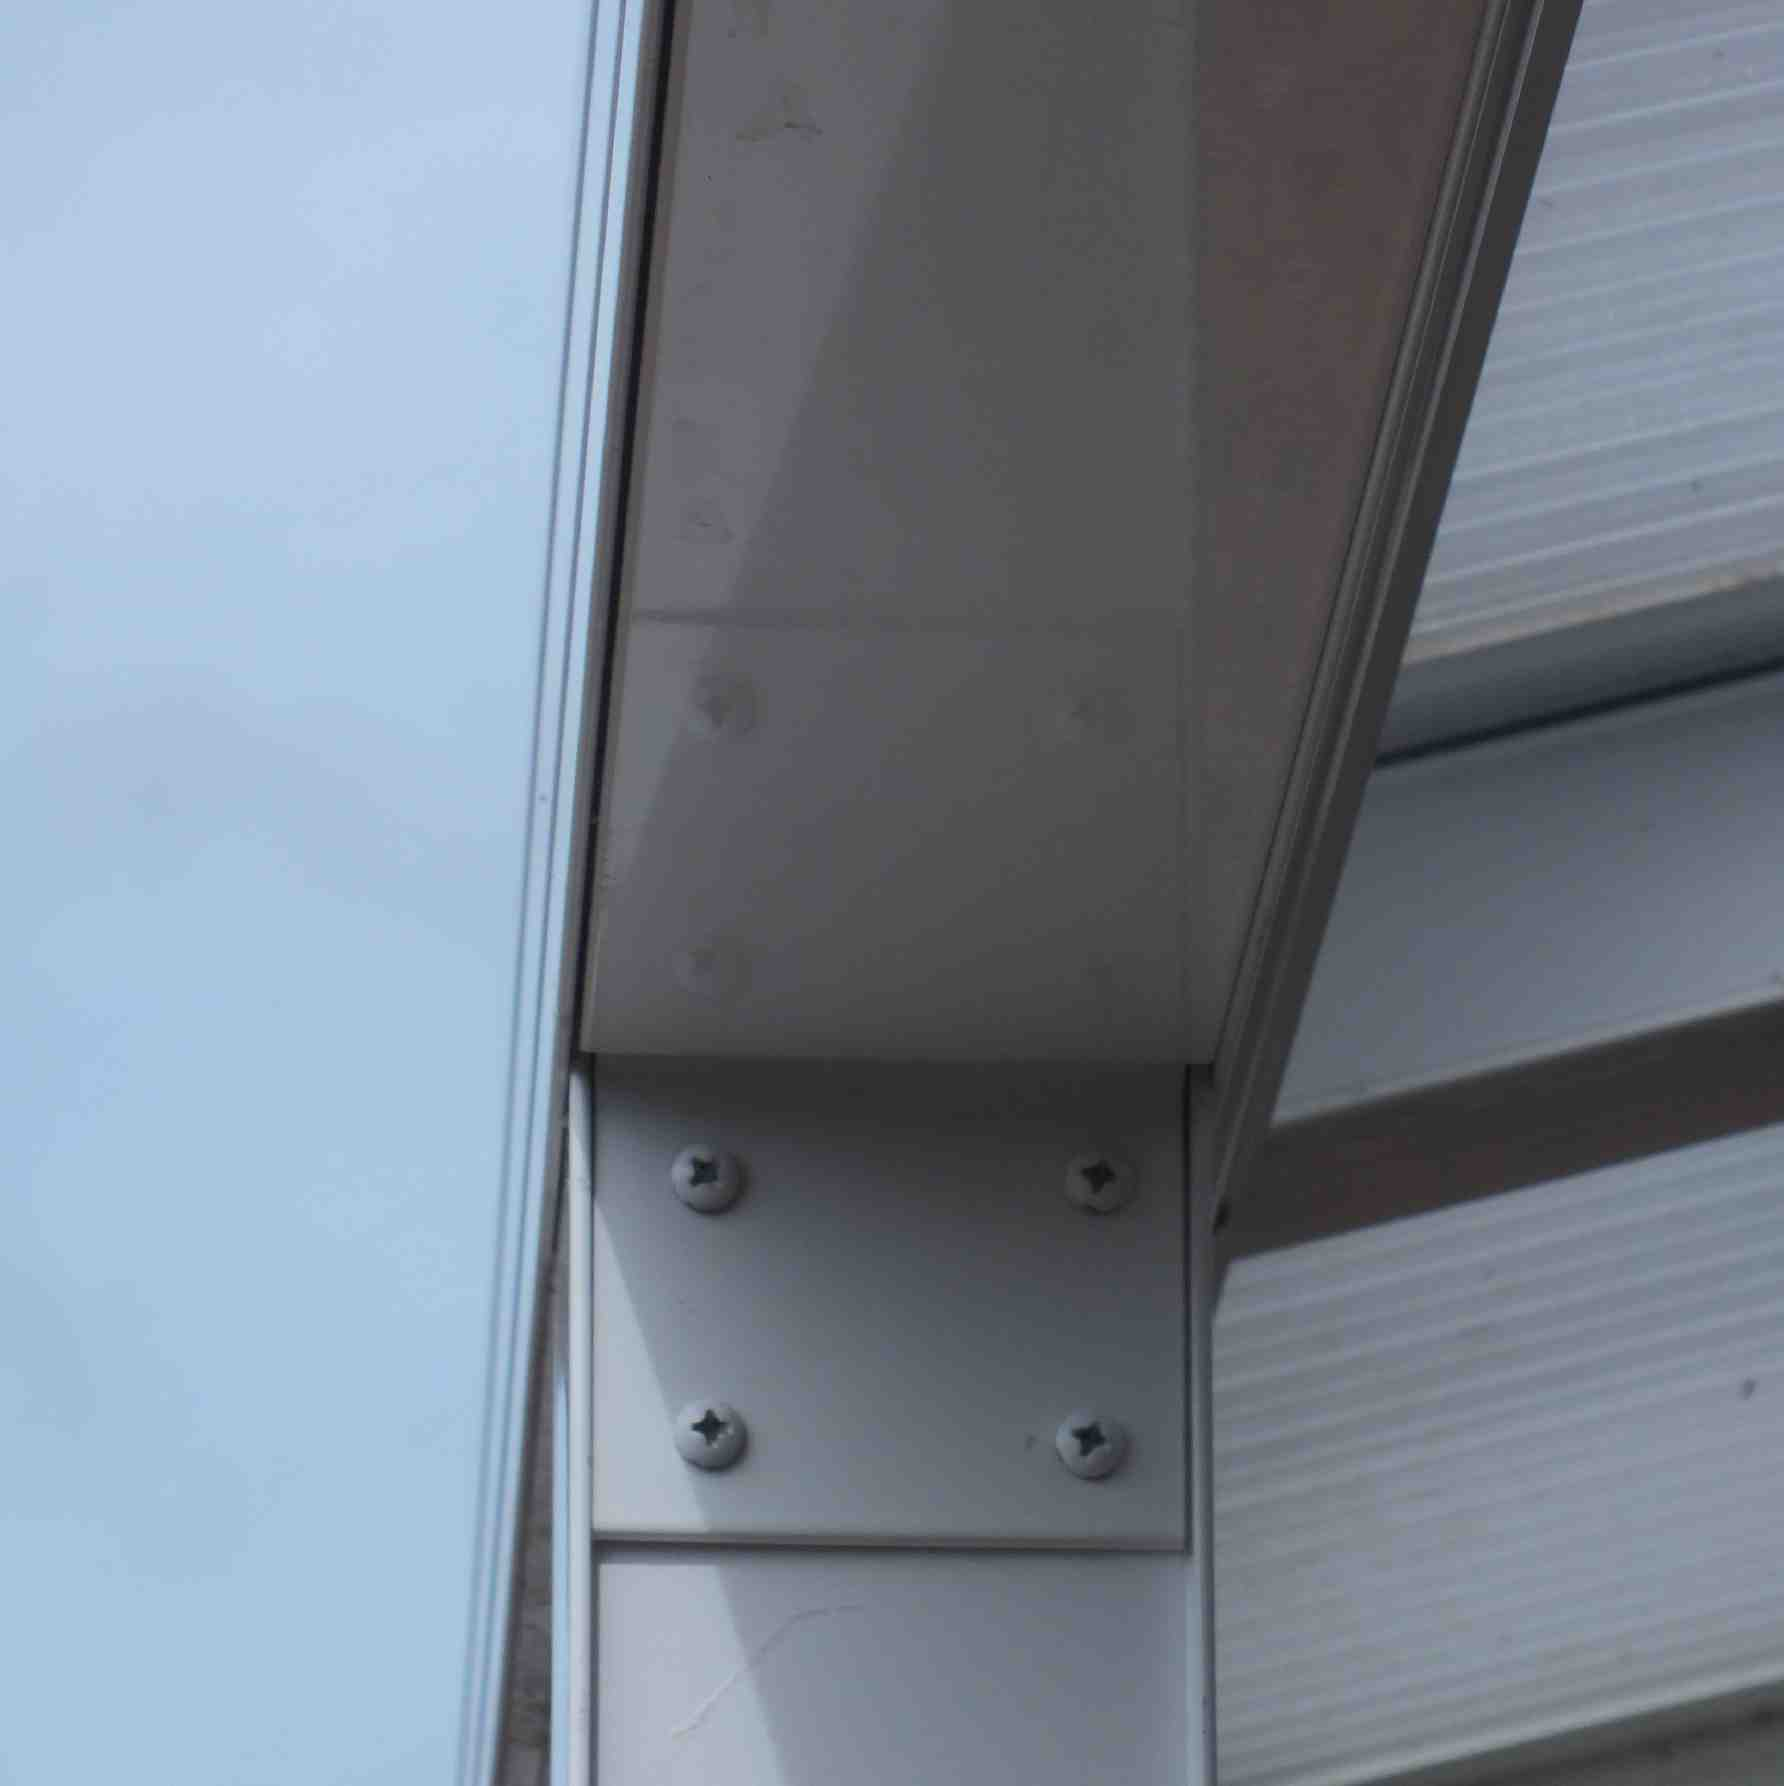 Affordable Omega Verandah with 16mm Polycarbonate Glazing - 5.2m (W) x 2.5m (P), (3) Supporting Posts